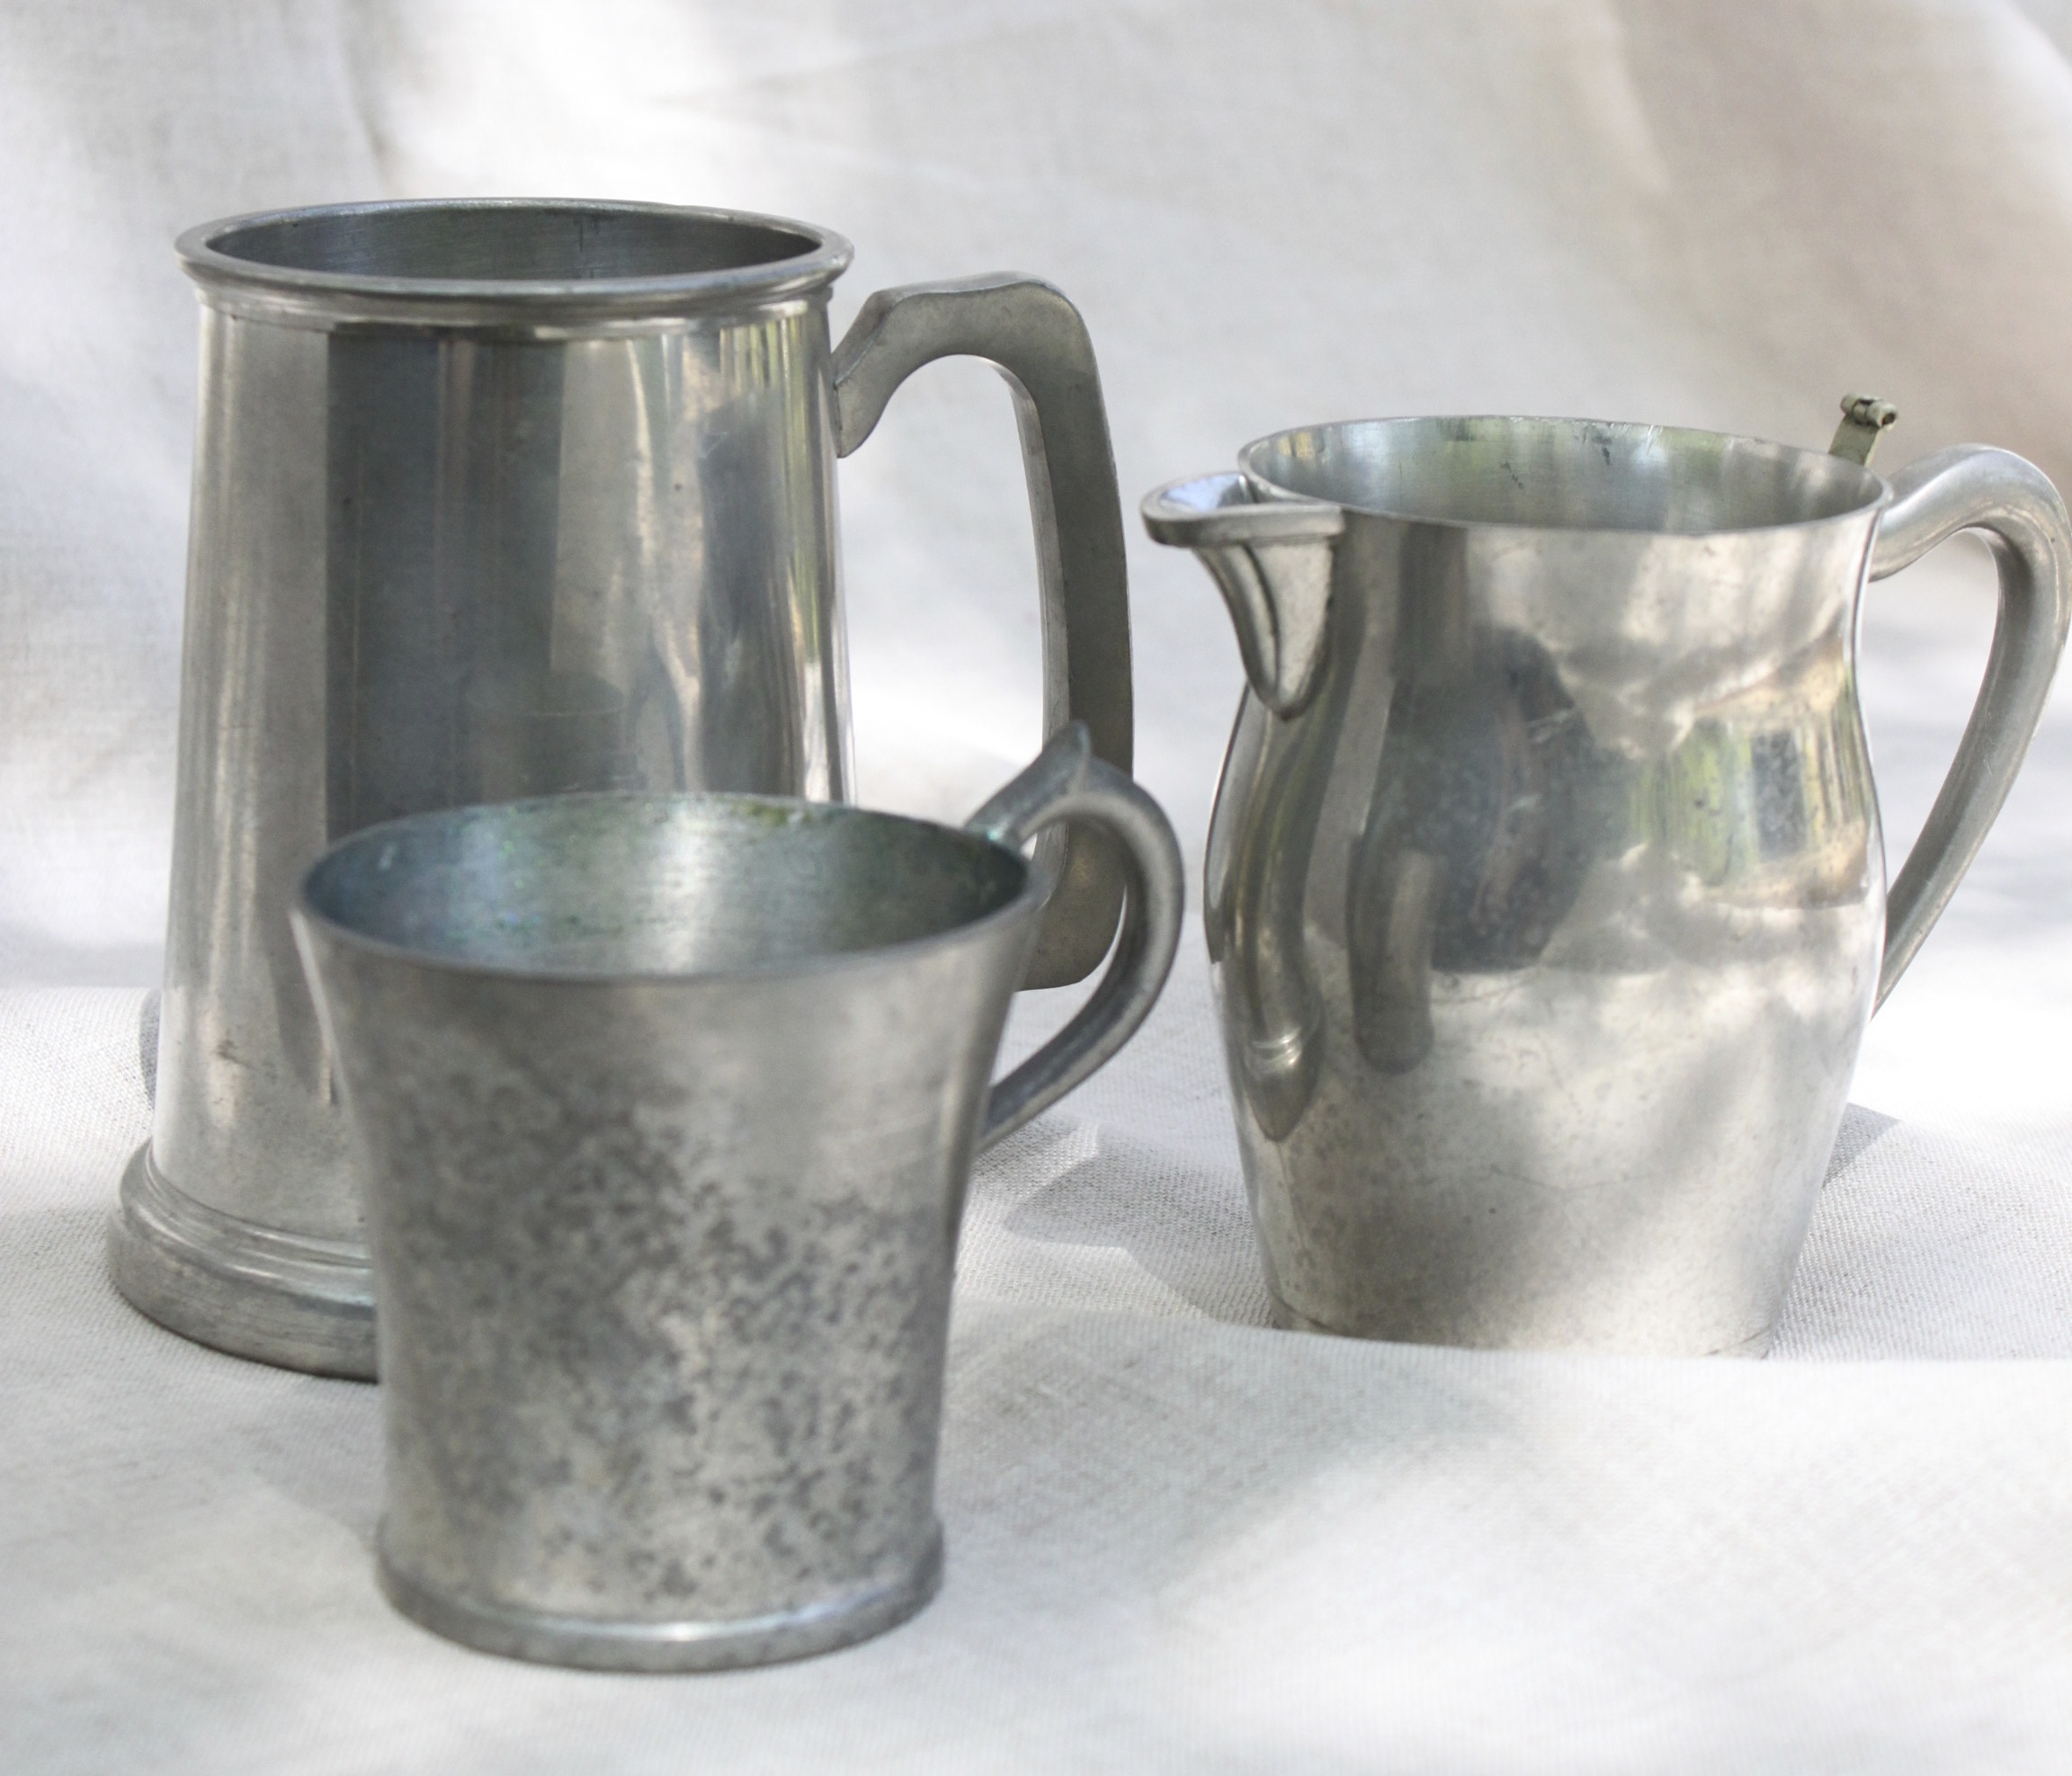 Vintage pewter-assorted sizes and shapes  Perfect for floral arrangements  $10 each